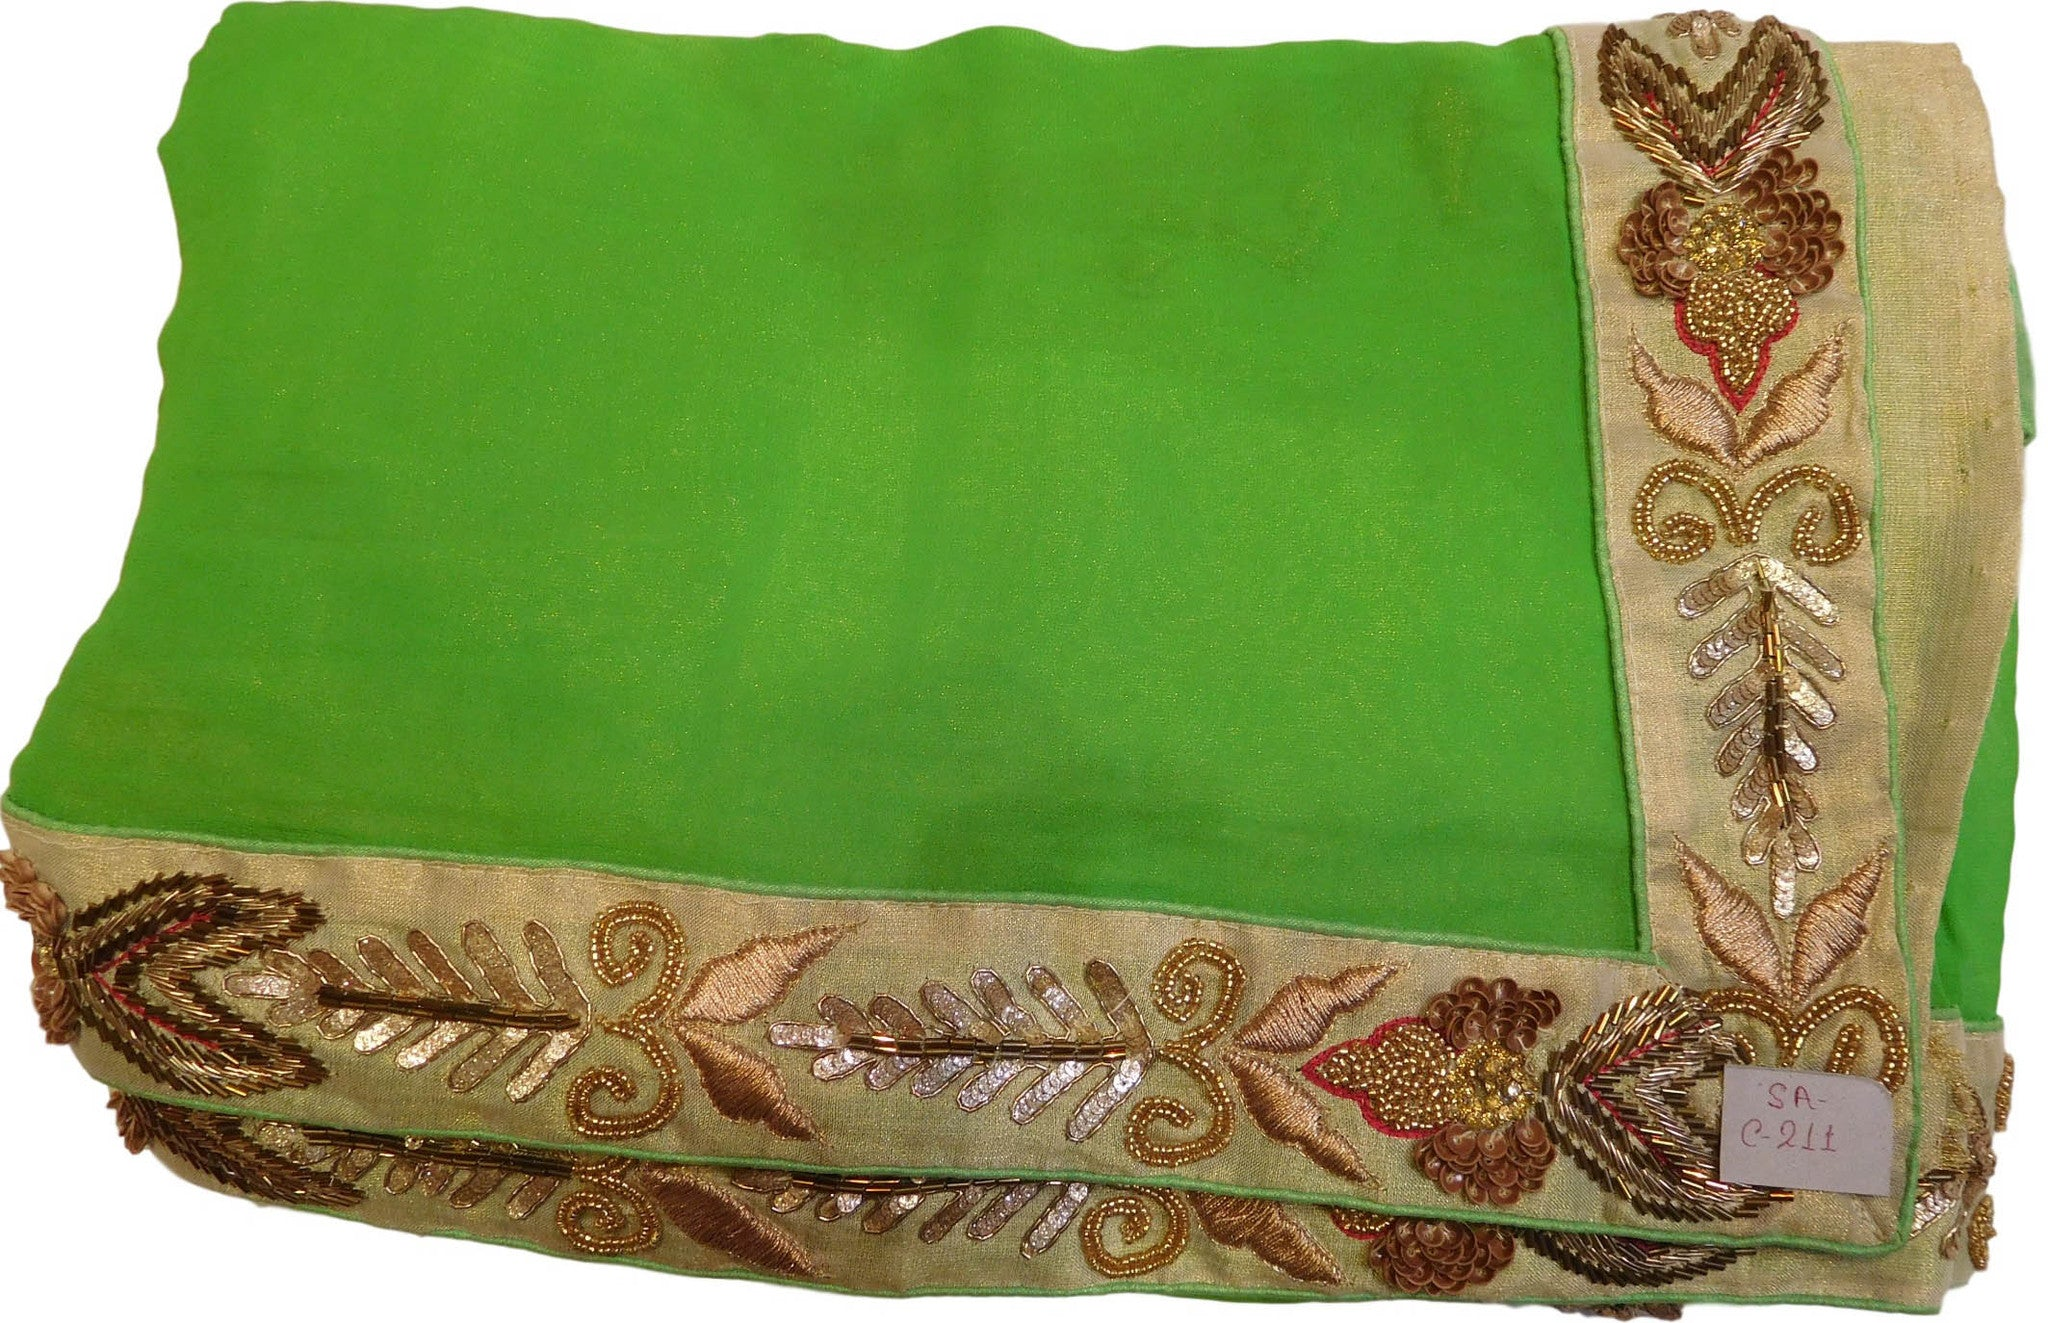 Green Designer Georgette Saree With Pearl, Cutdana, Bullion Work Border